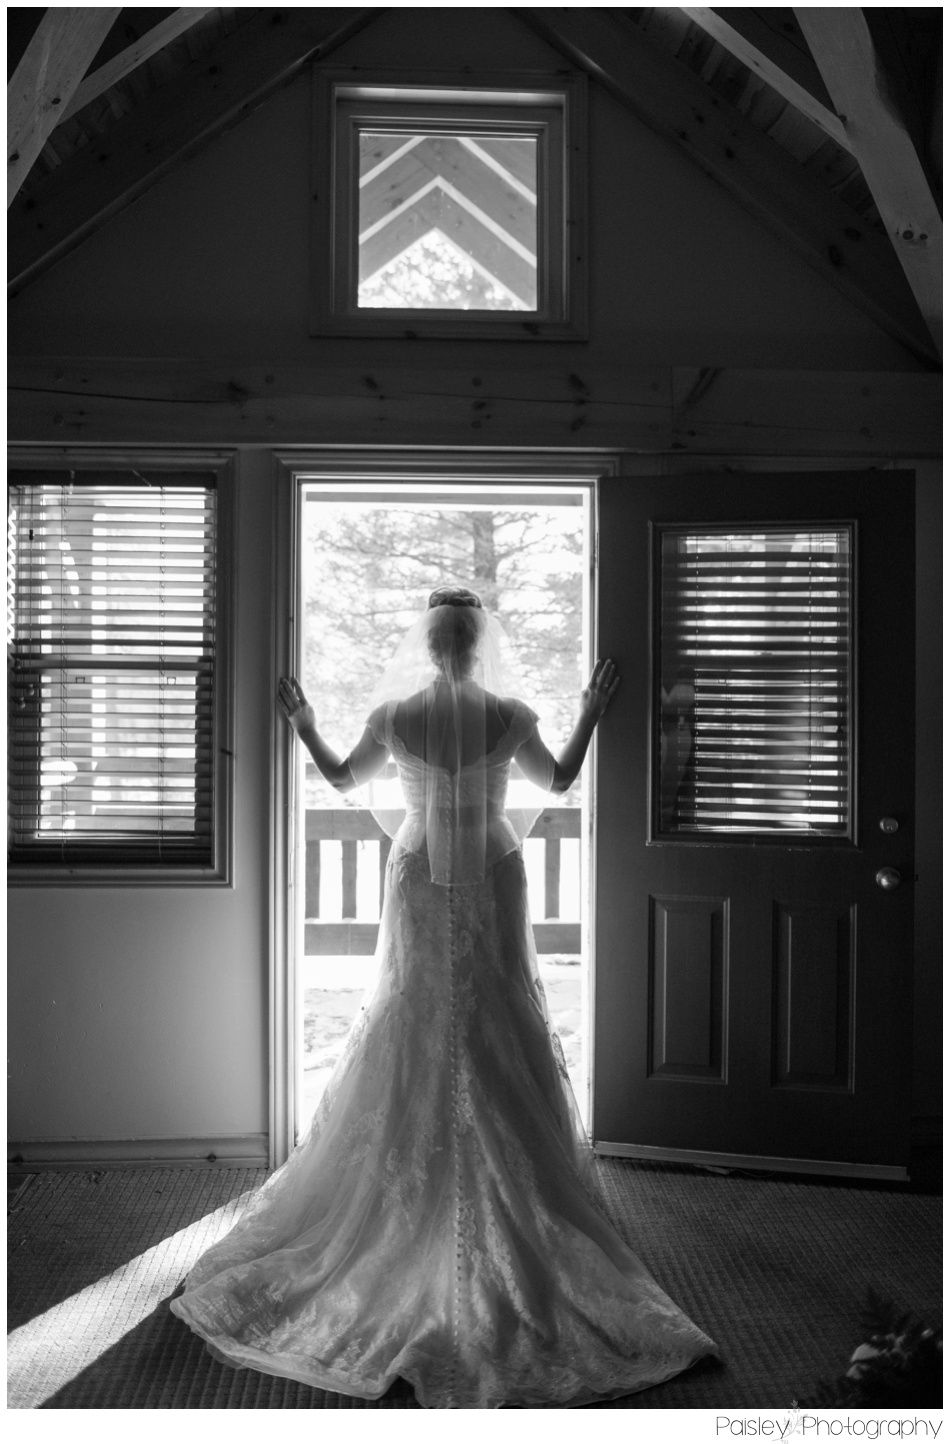 Oleg Cassini Wedding Dress, Tunnel Mountain Wedding, Buffalo Mountain Lodge Wedding, Banff Wedding Photographer, Banff Wedding Photography, Rocky Mountain wedding, Calgary Wedding Photographer, Calgary Wedding Photography, Canmore Mountain Wedding, Lace Wedding Dress, Cap Sleeve Wedding Dress